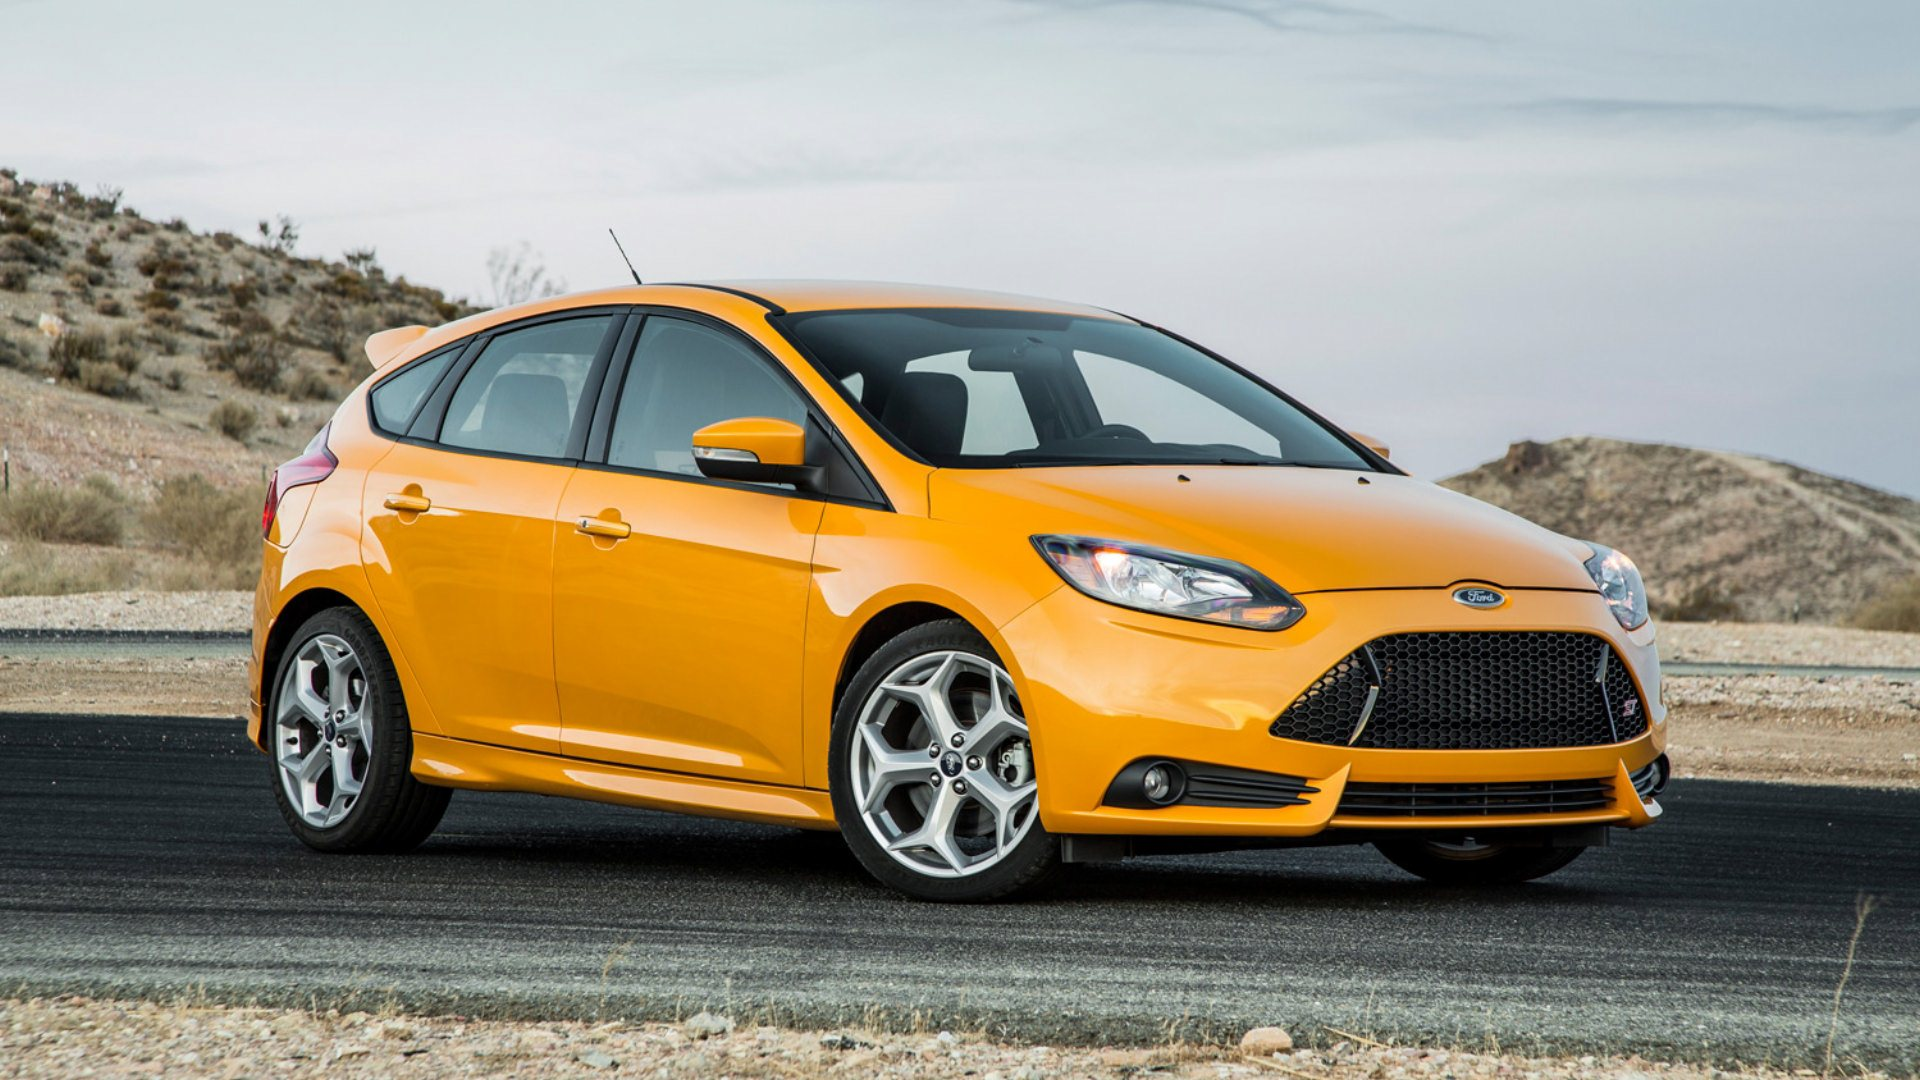 2013 Ford Focus ST wallpaperjpg 1920x1080